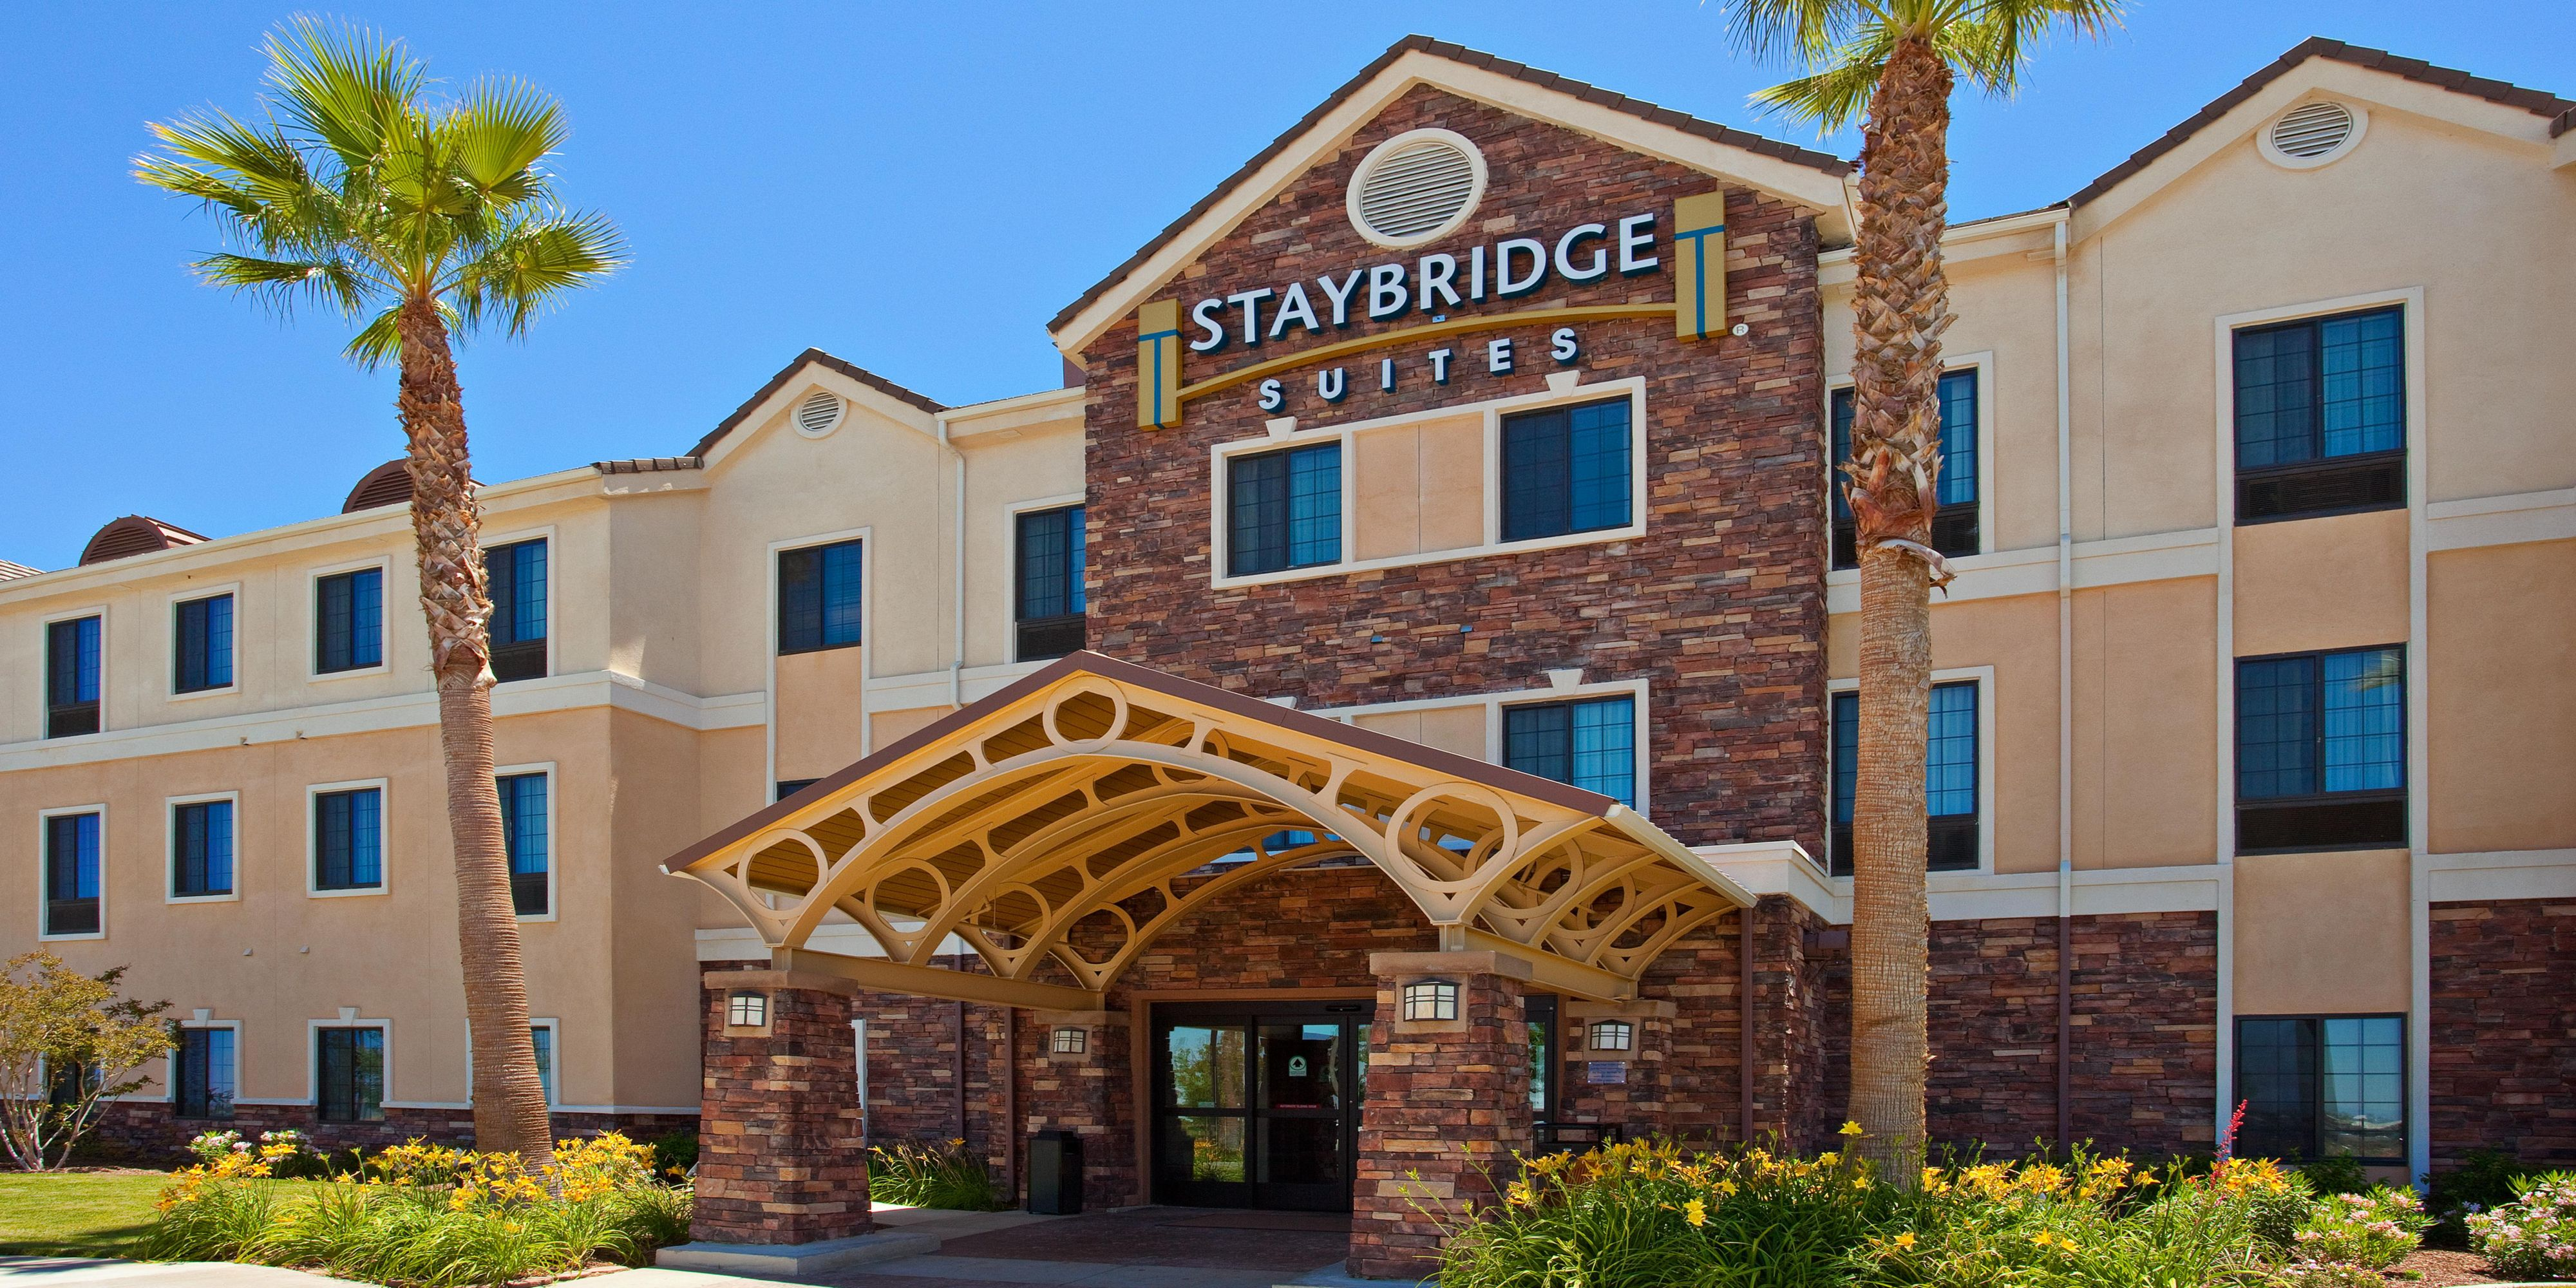 extended stay hotel suites in palmdale ca staybridge suites palmdale rh ihg com